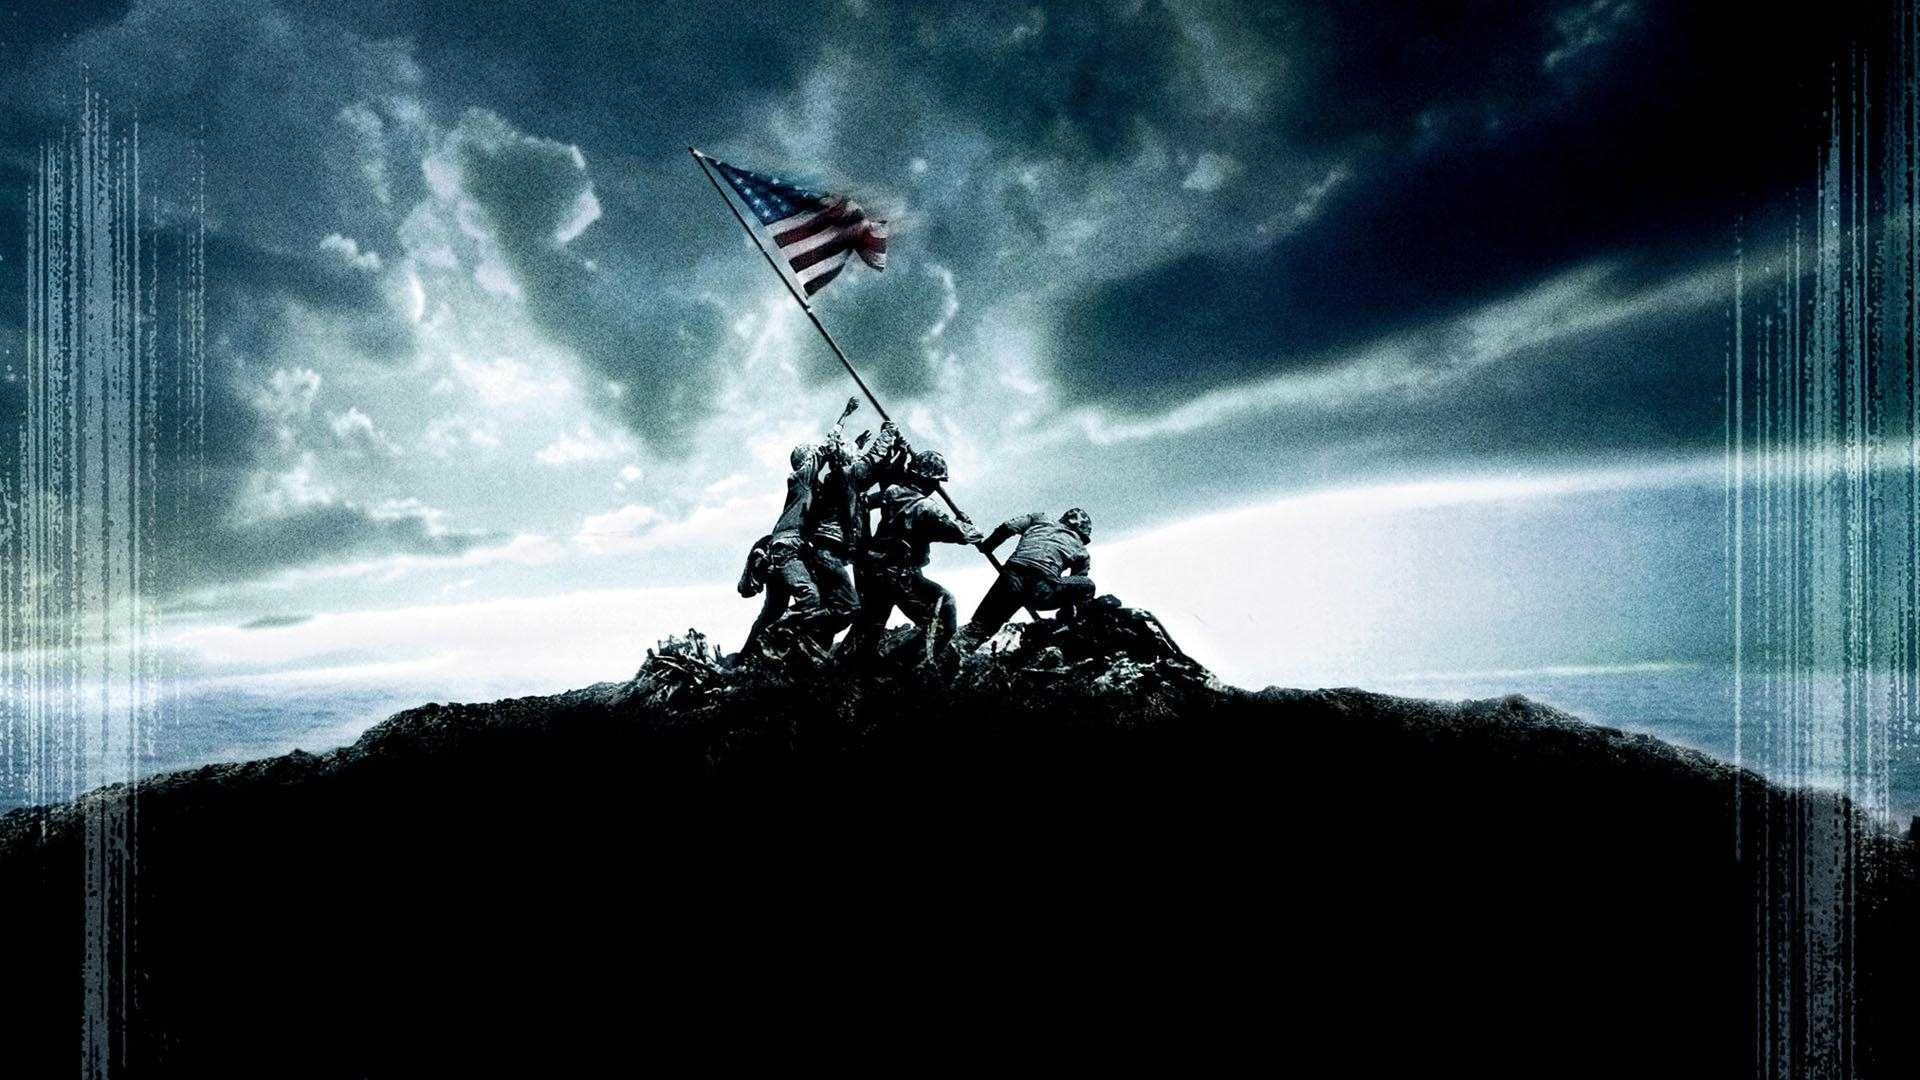 1920x1080 United State Military Flag Pictures United States Marine Corps Wallpapers - Wallpaper Cave .